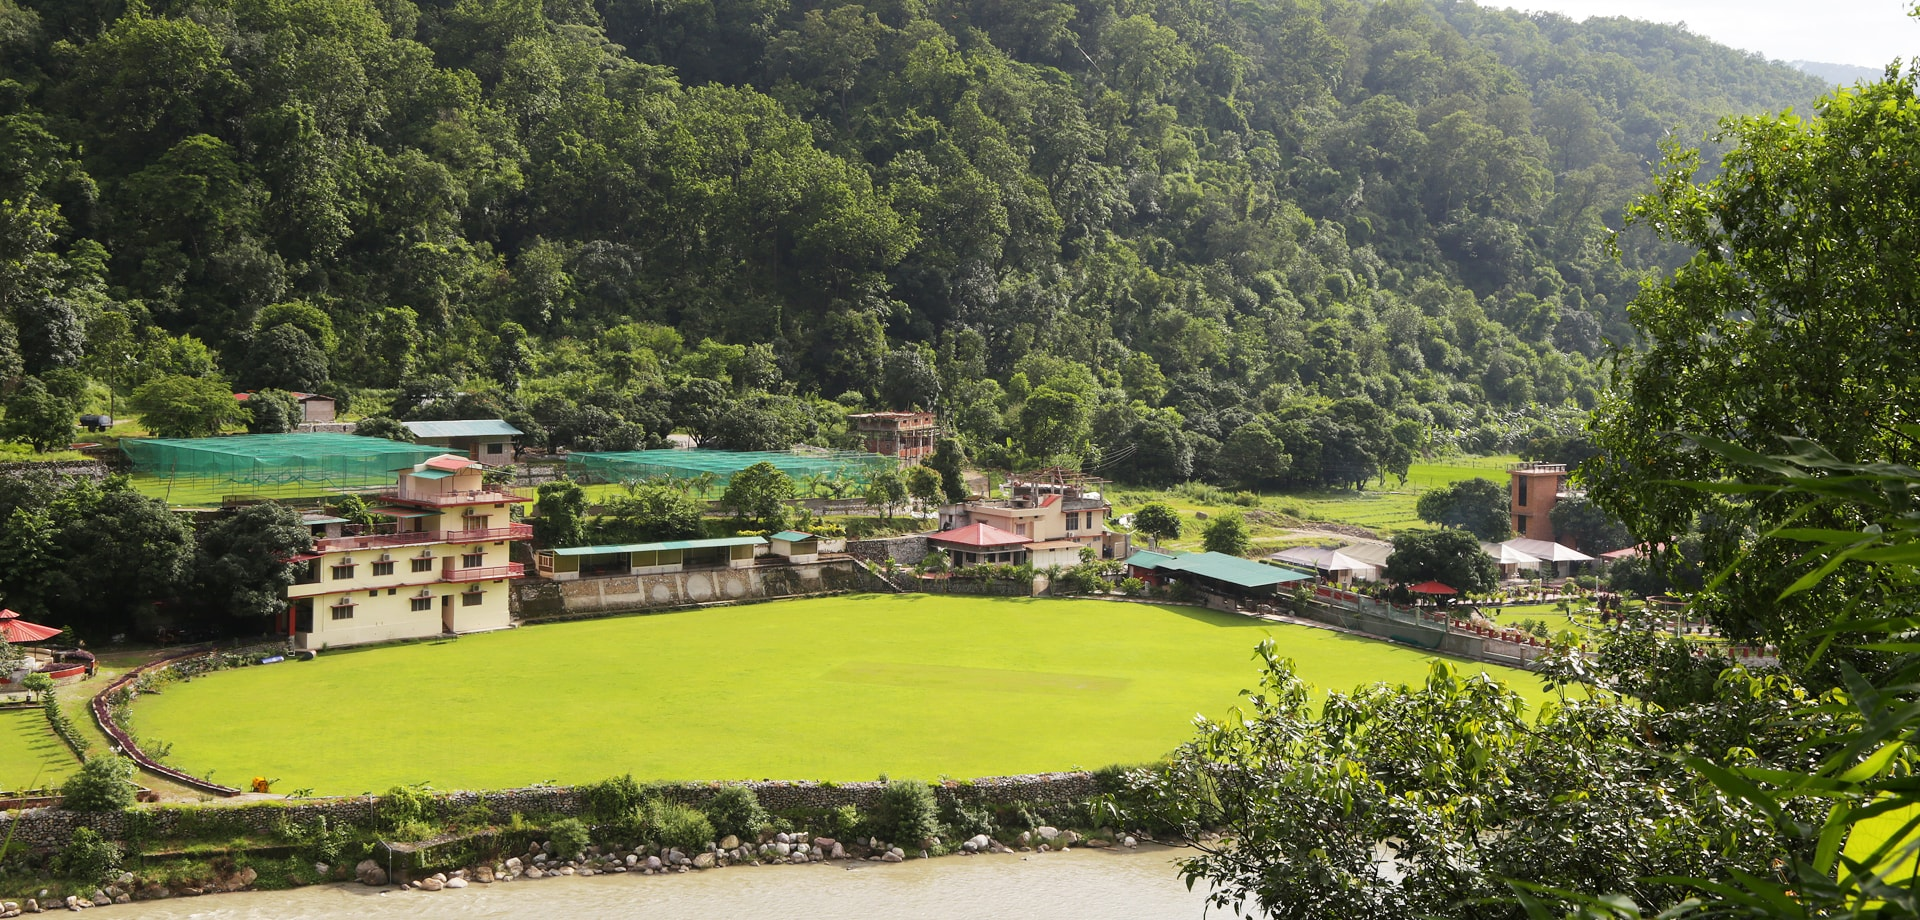 Cricket ground in corbett